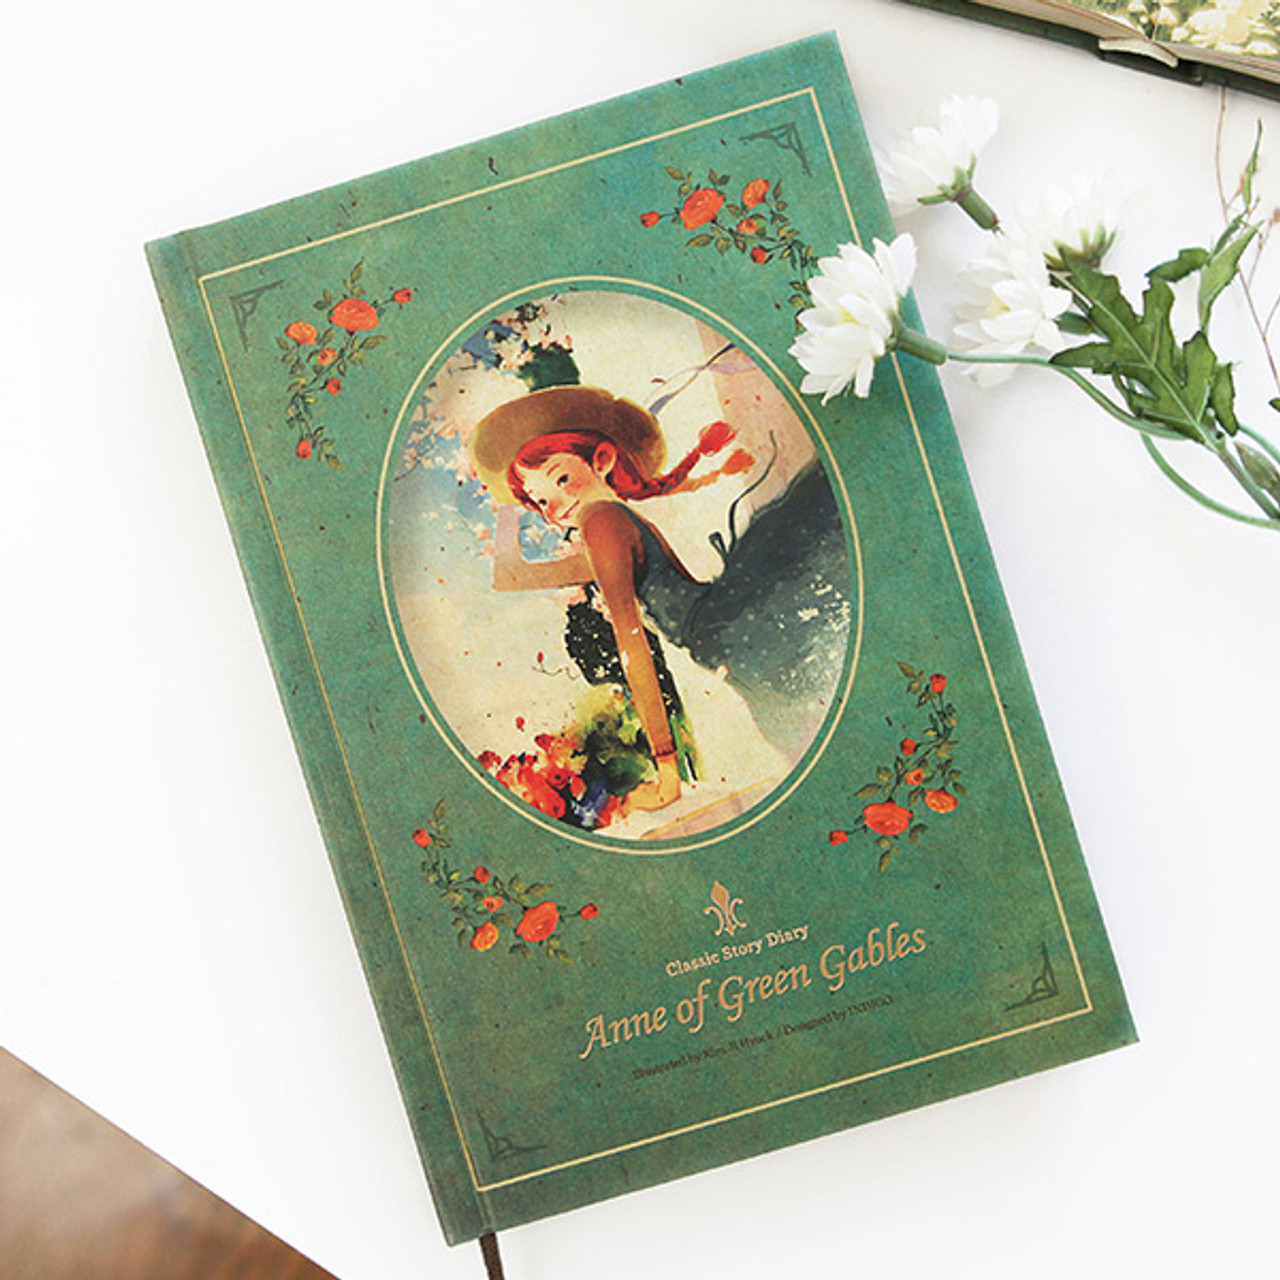 Indigo anne of green gables daily undated diary fallindesign for Anne of green gables crafts